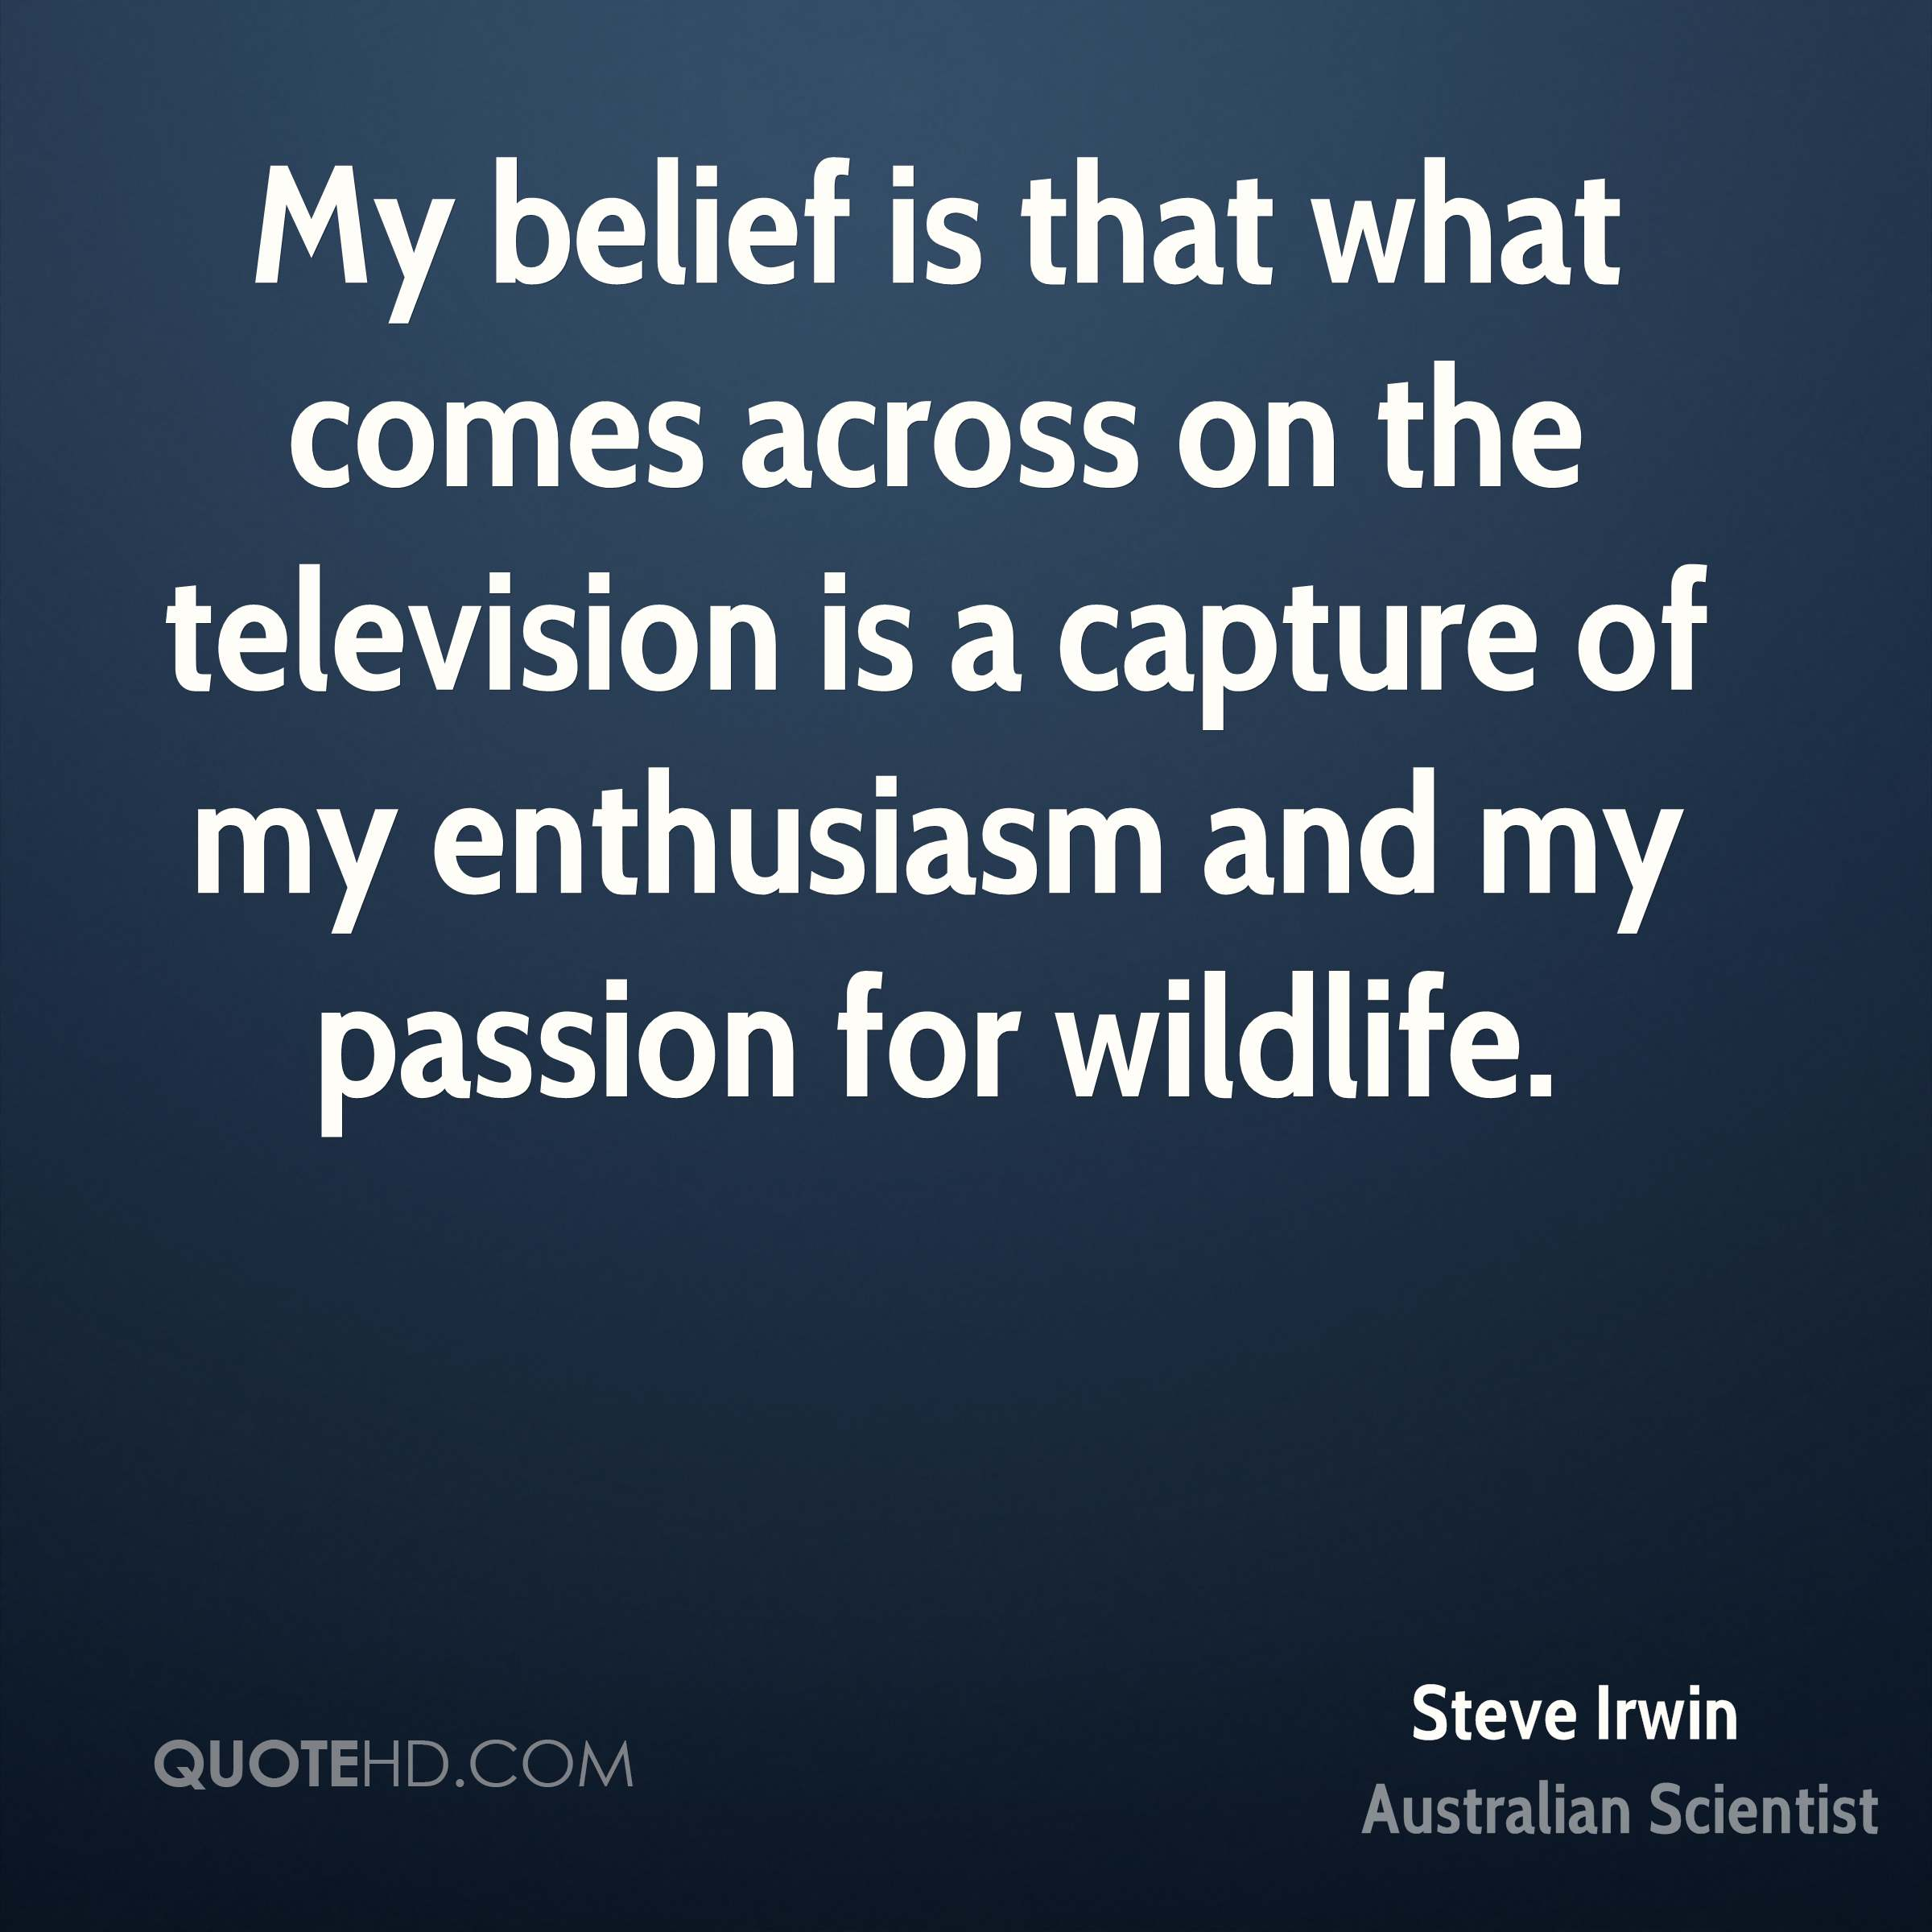 My belief is that what comes across on the television is a capture of my enthusiasm and my passion for wildlife.